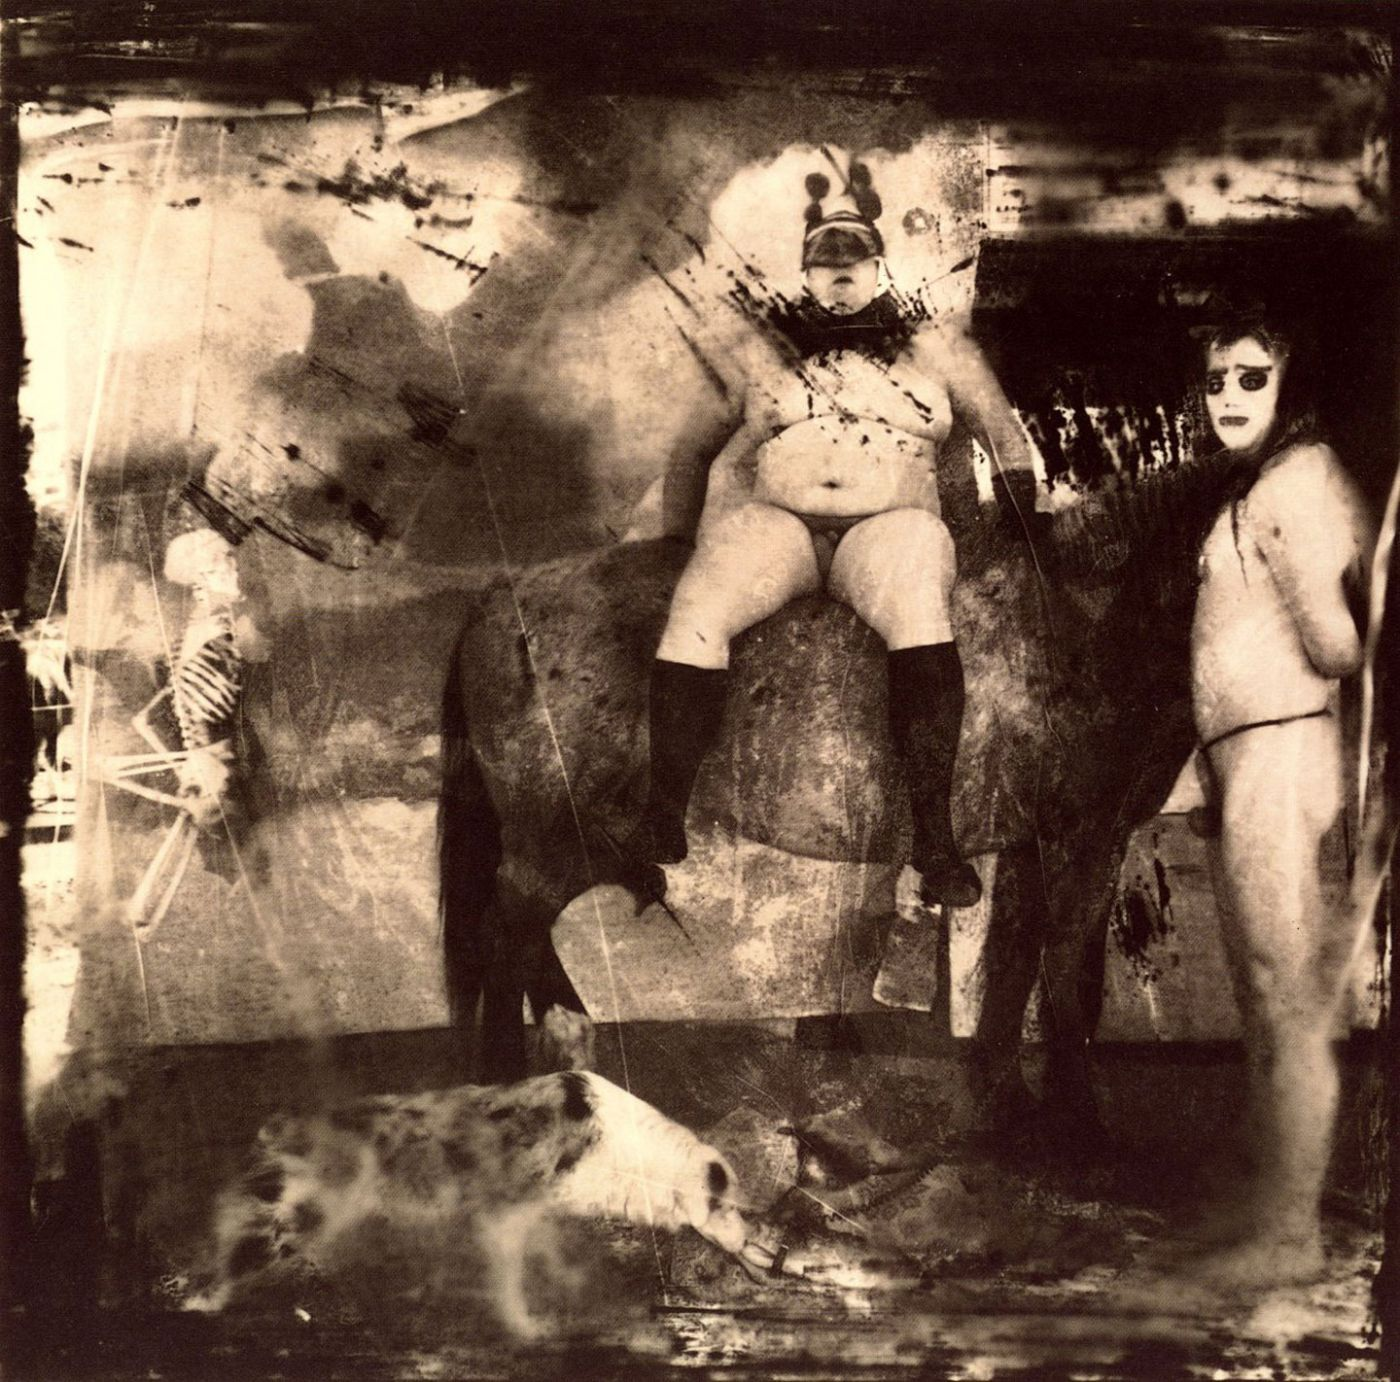 Joel-Peter Witkin: Gods of Earth and Heaven (First Edition) [SIGNED]